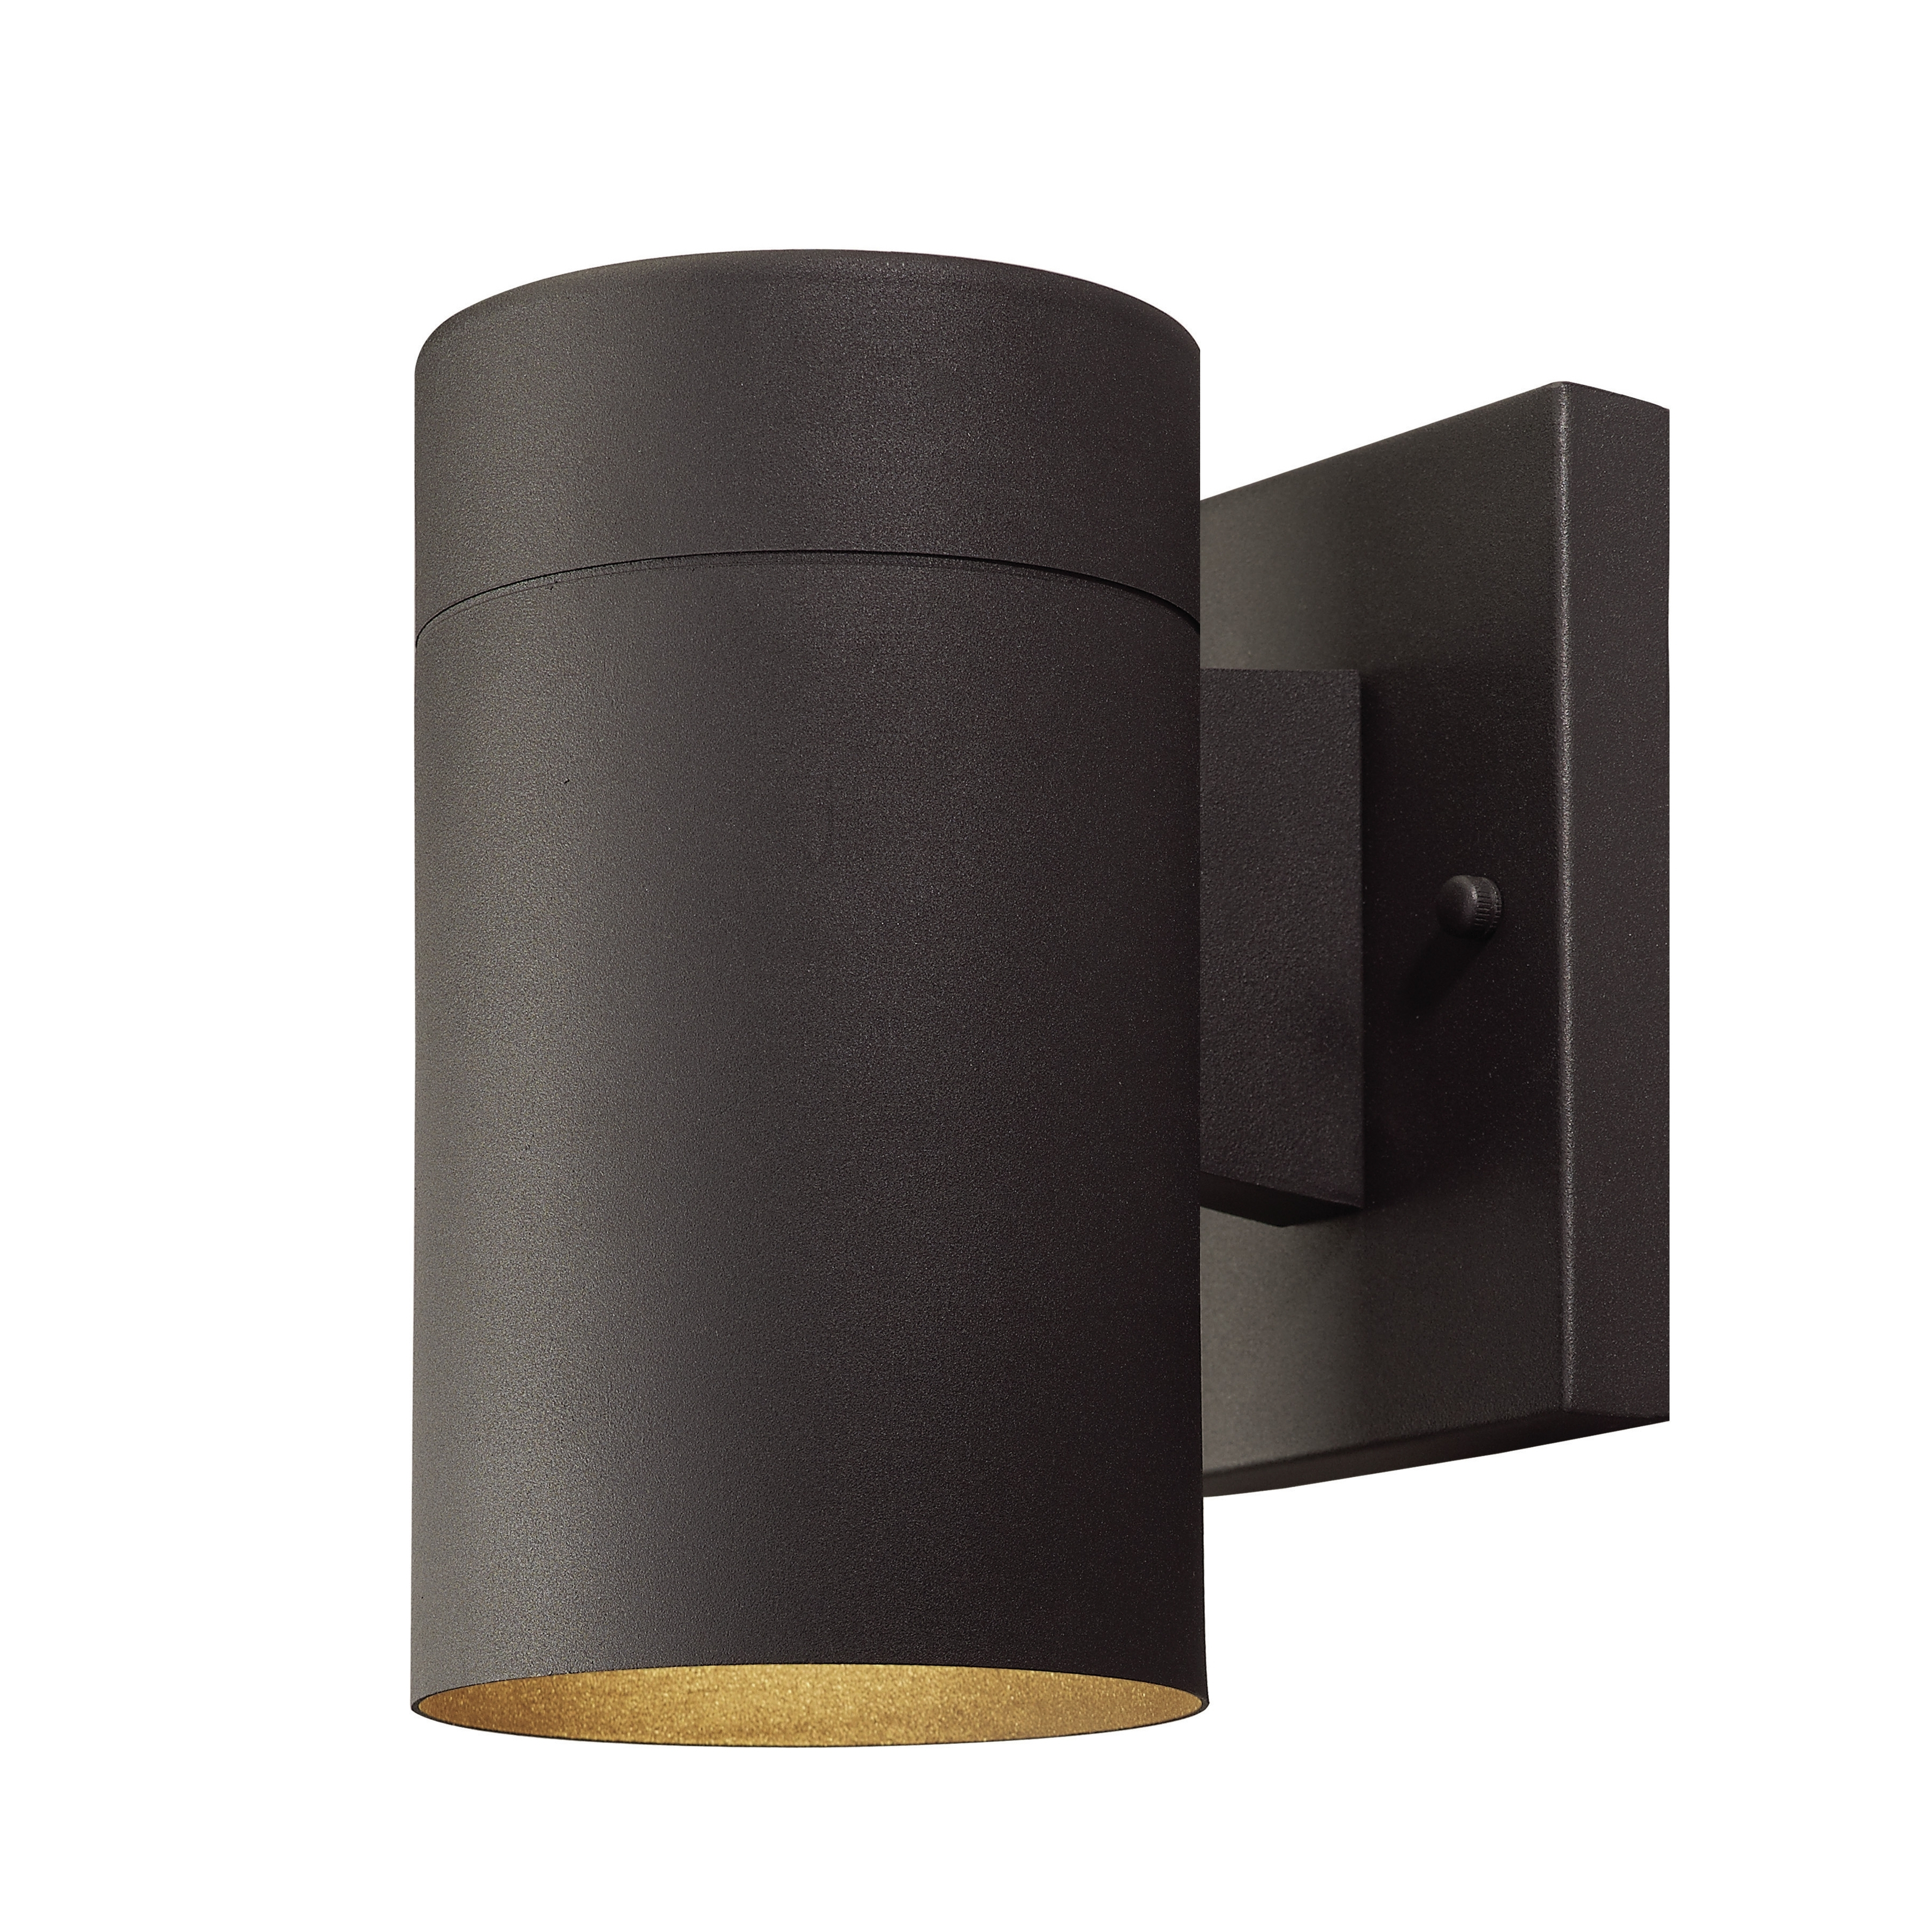 Contemporary Rustic Outdoor Lighting At Wayfair Throughout 2019 Maxim 54362clabz Civic Contemporary Architectural Bronze Led (View 15 of 20)